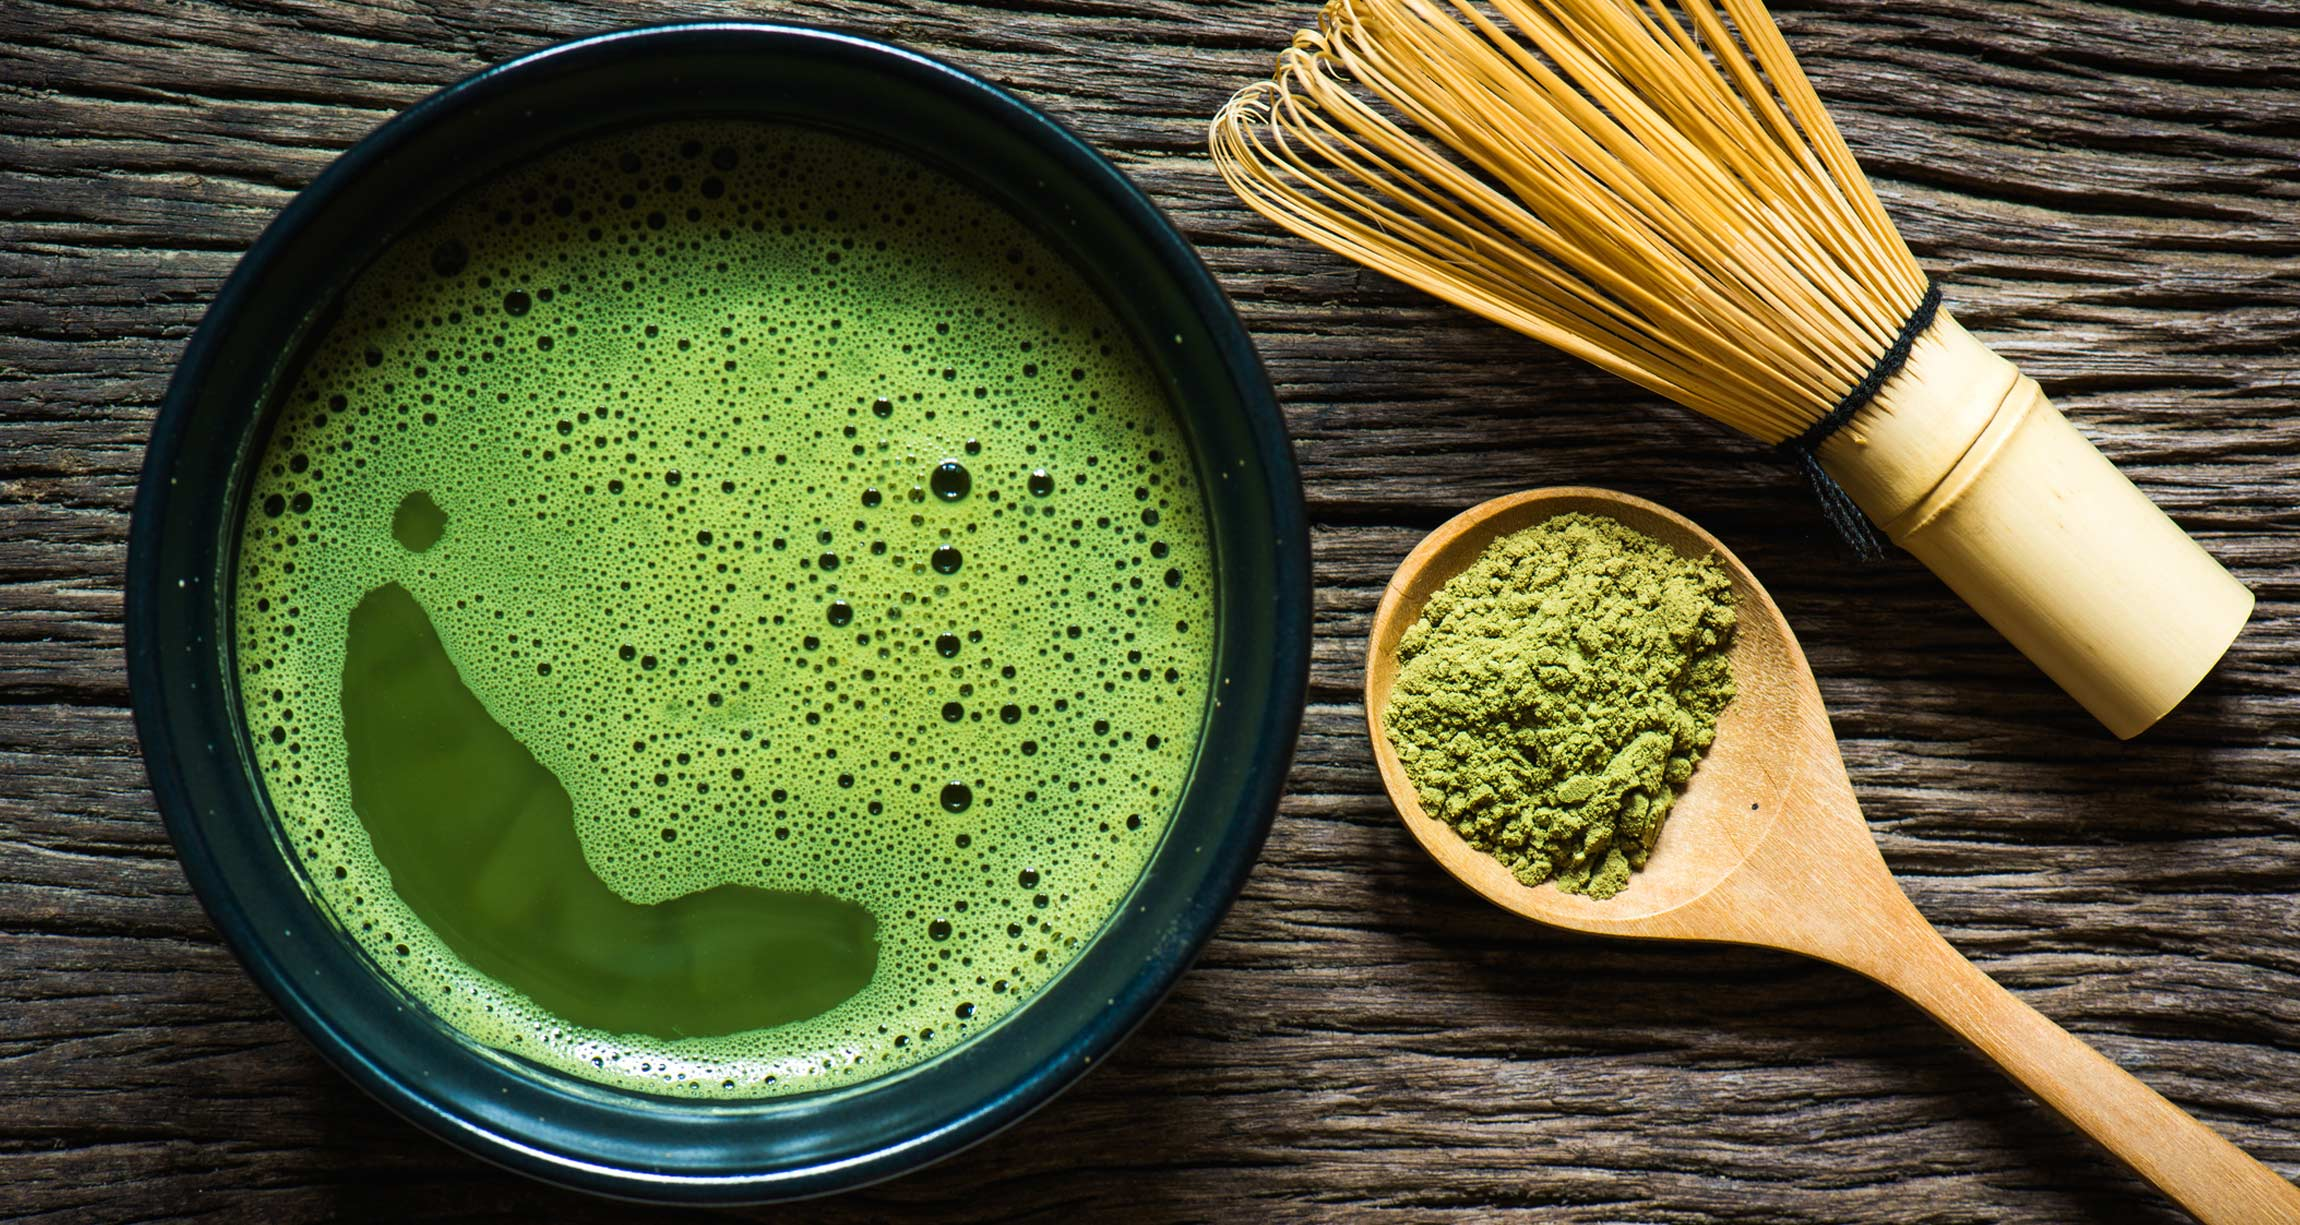 Matcha tea with spoon and whisk / image source: Oregon Sports News